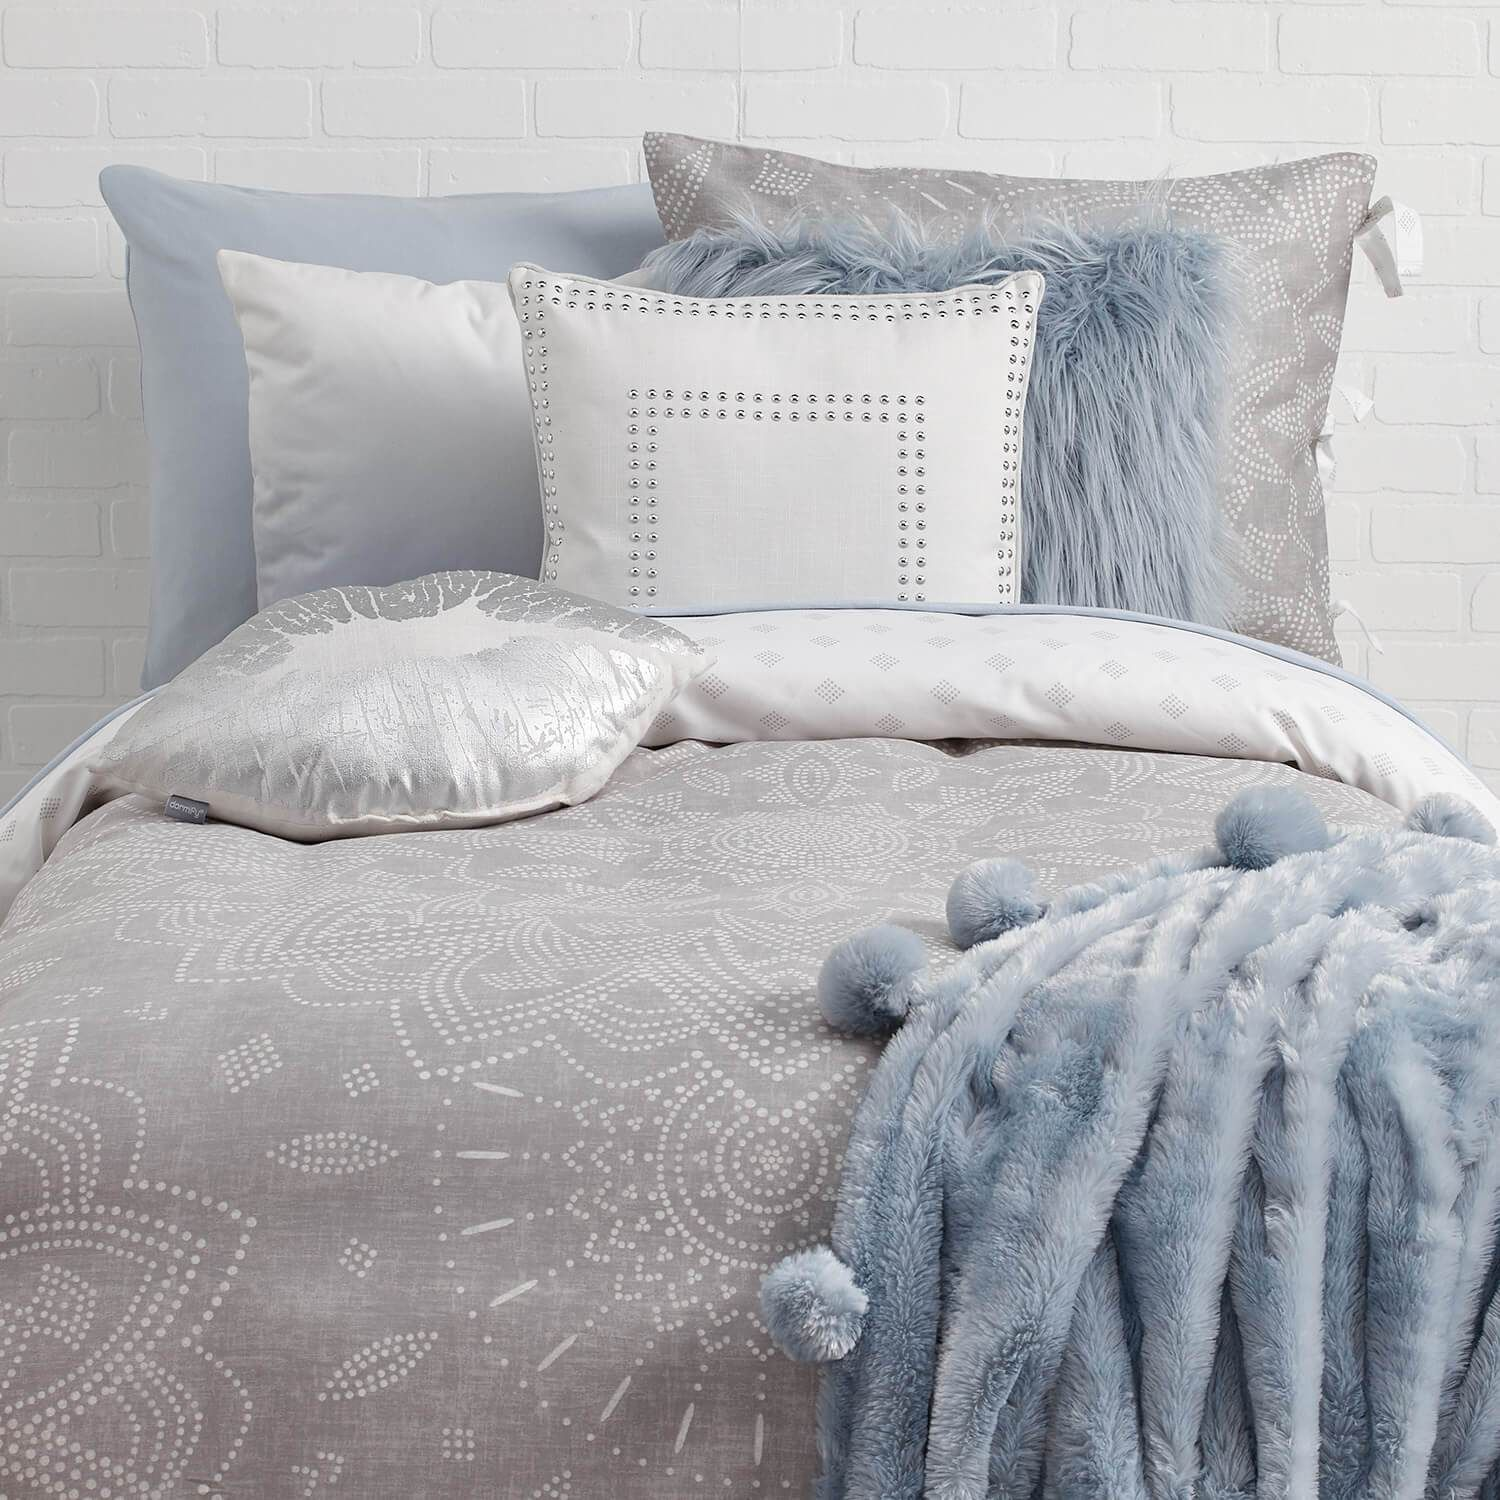 Your Style Quiz Results Dormify Dorm Bedding Sets Dorm Room